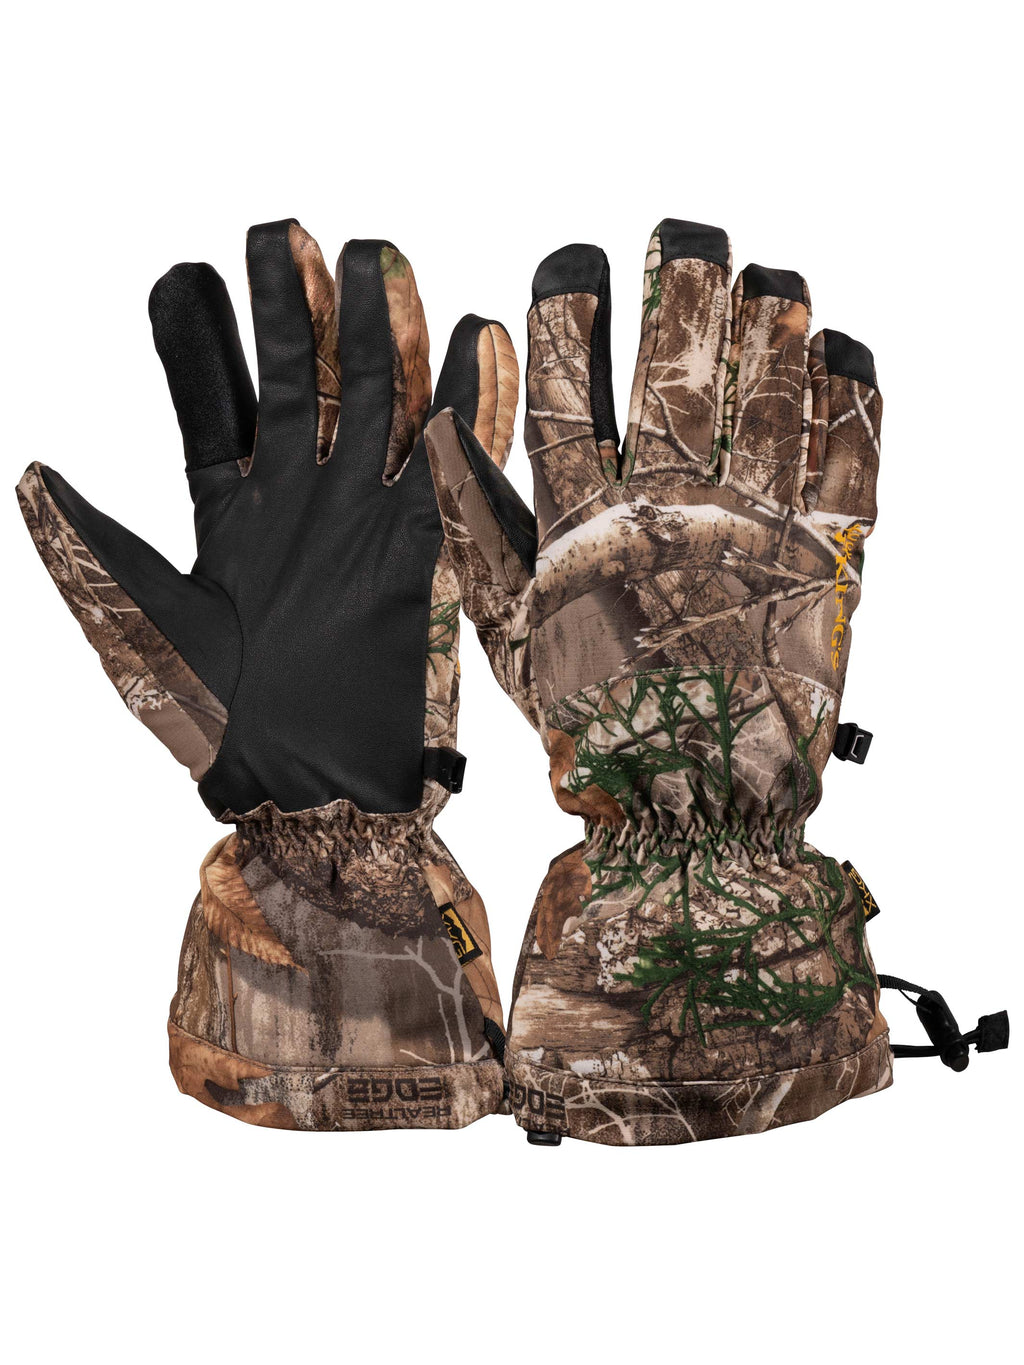 XKG Insulated Gloves in Realtree Edge | King's Camo